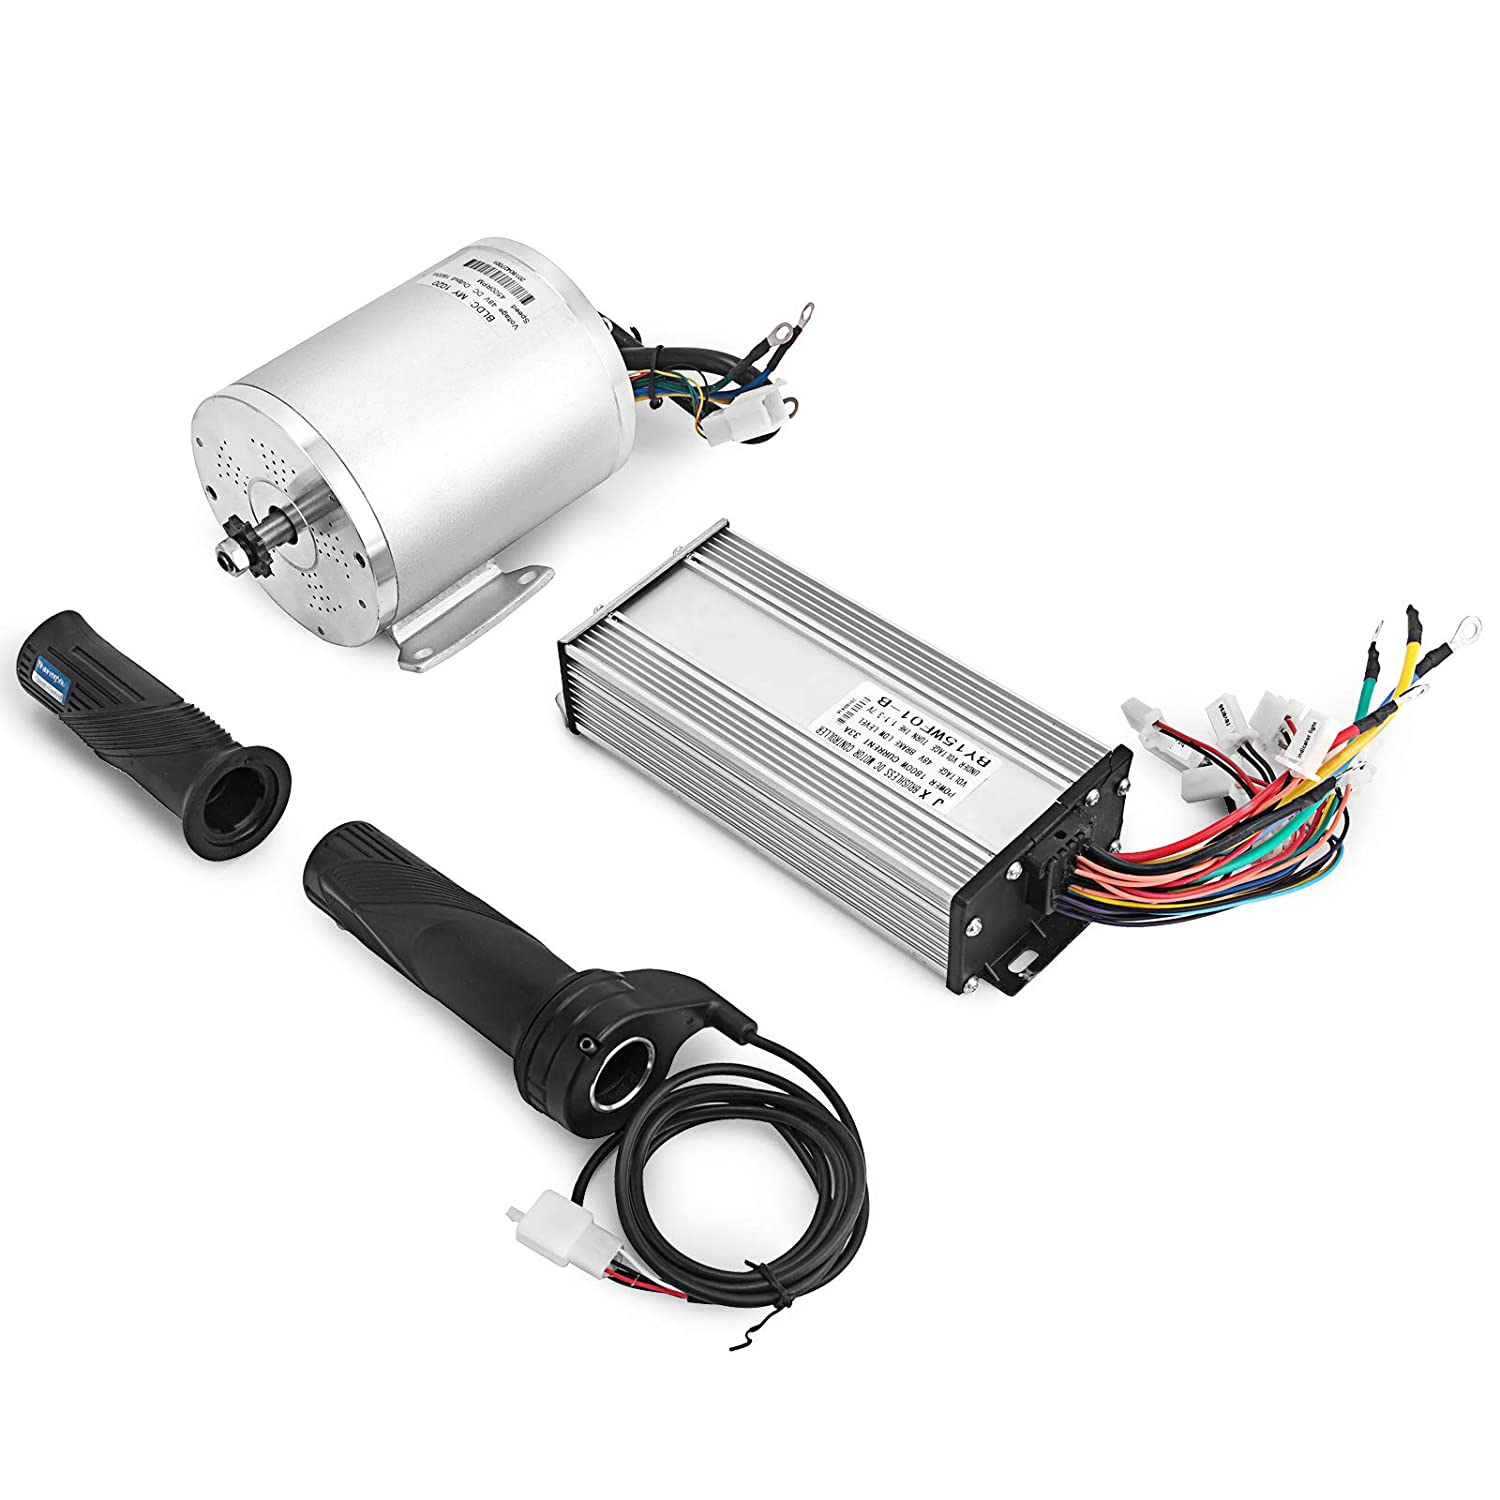 Mophorn 1800w Electric Brushless Dc Motor Kit 48v High 18 Volt Battery Wiring Diagram Speed With 32a Controller And Throttle Grip For Go Karts E Bike